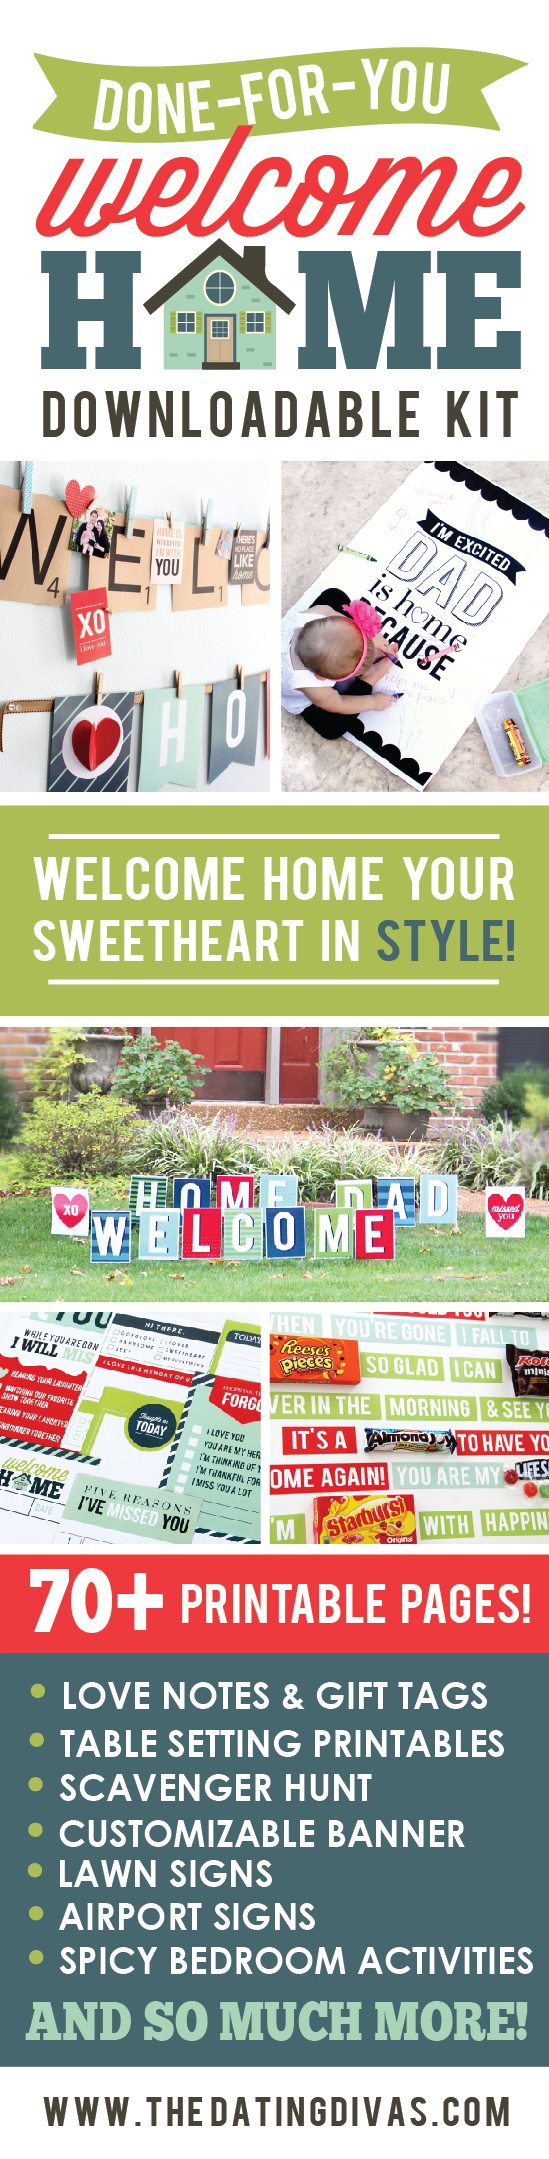 Welcome Home Kit Pinterest